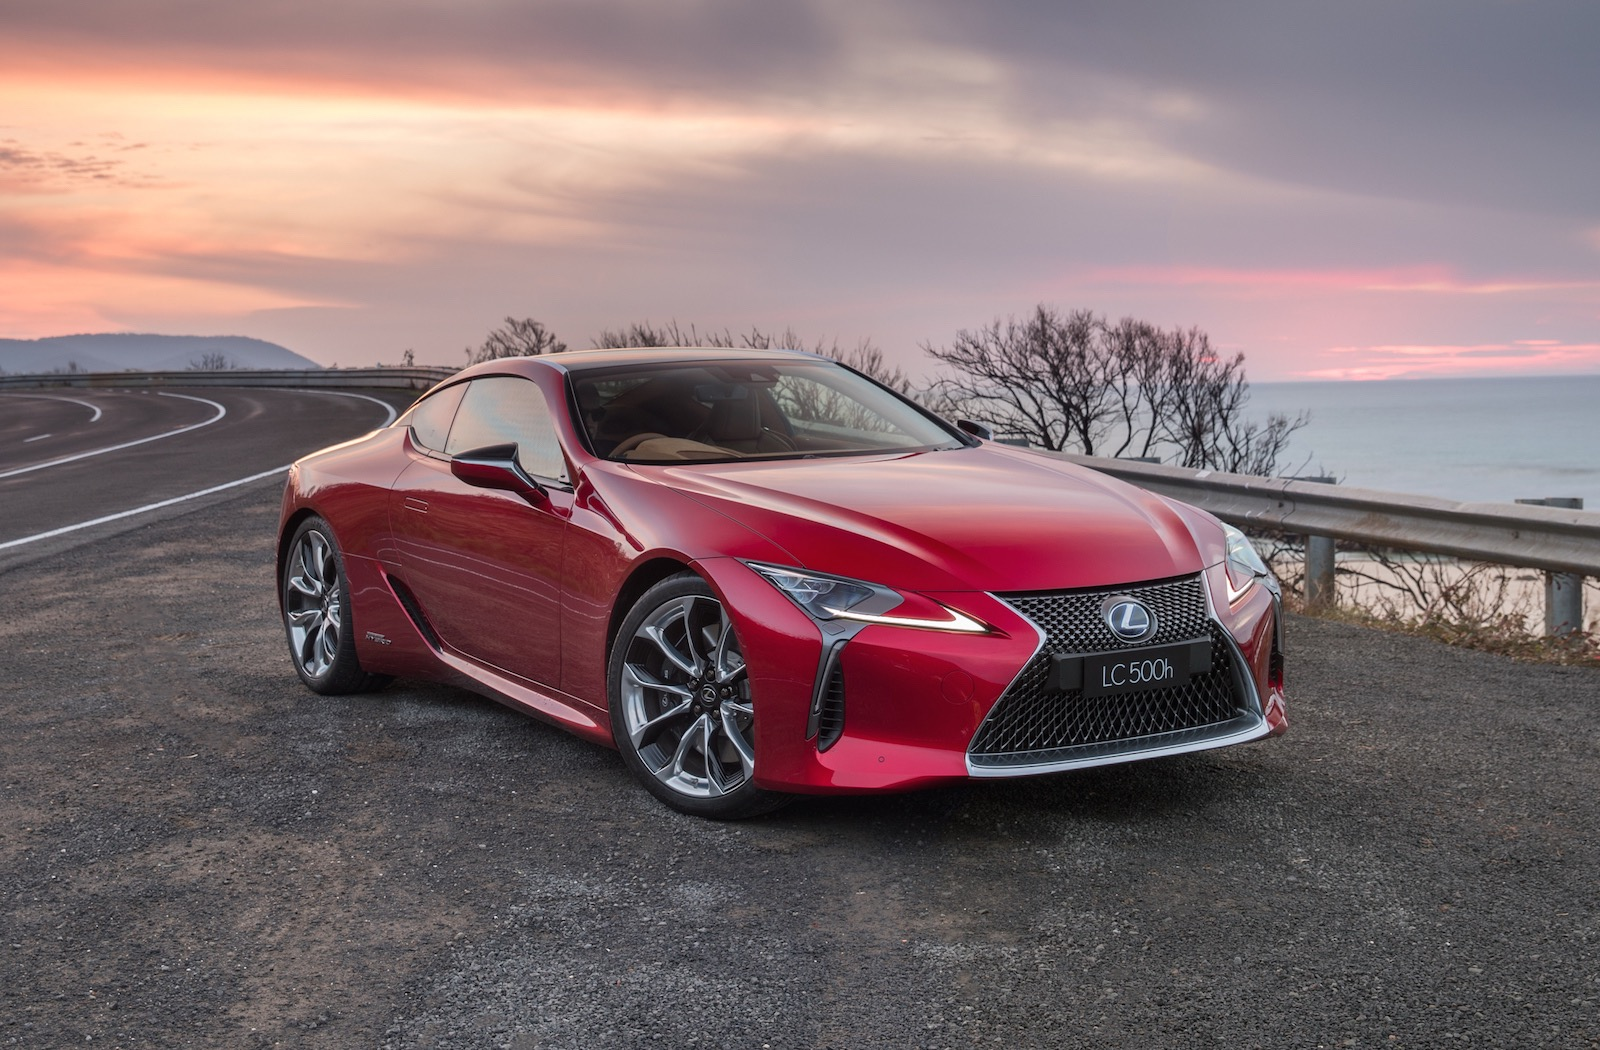 Lexus Cars For Sale >> Lexus LC 500 & 500h on sale in Australia from $190,000 | PerformanceDrive